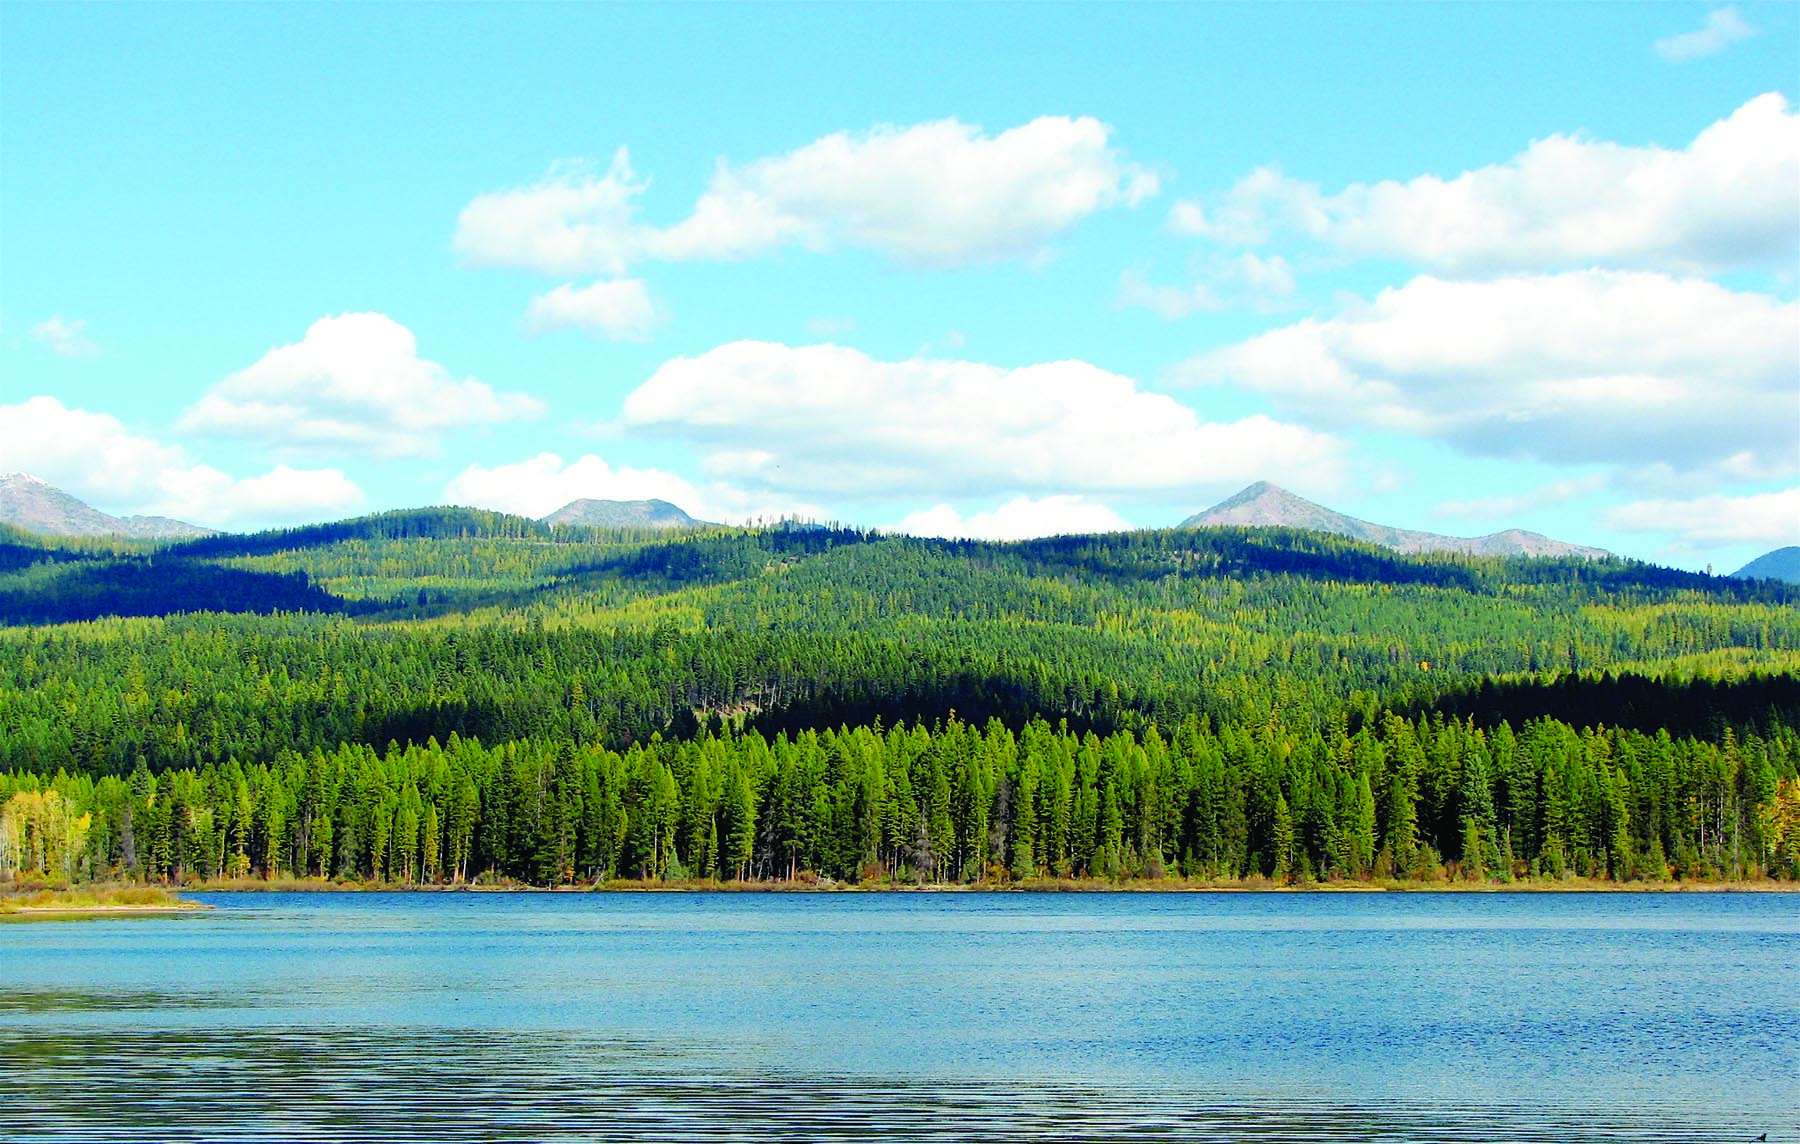 seeley lake single men The seeley lake 50 is on saturday june 30, 2018 it includes the following events: seeley 50k, seeley 25k, and seeley 10k in order to use runsignup, your browser must accept cookies.